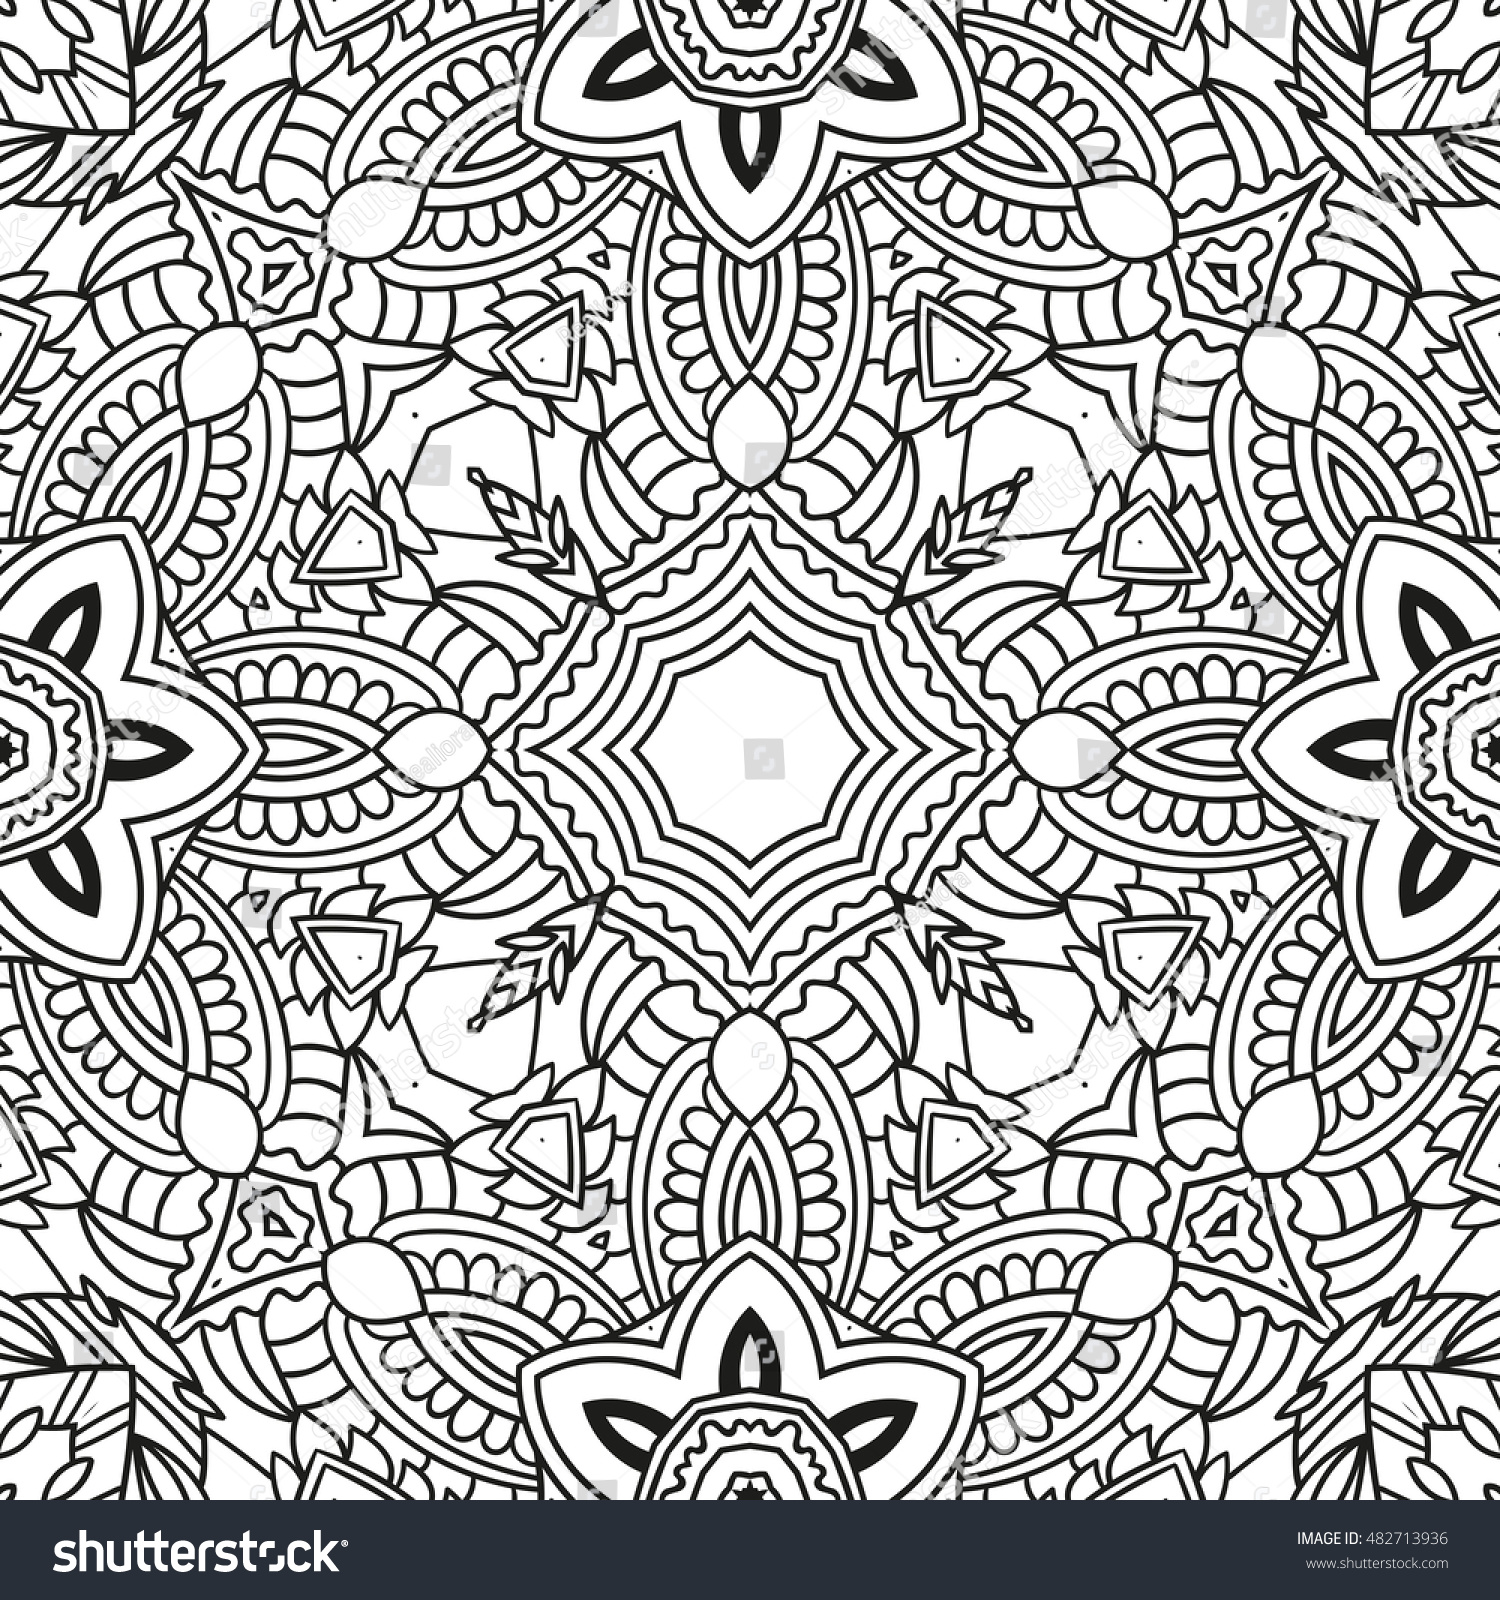 Adult Coloring Page Seamless Zendoodle Vector Stock Vector ...